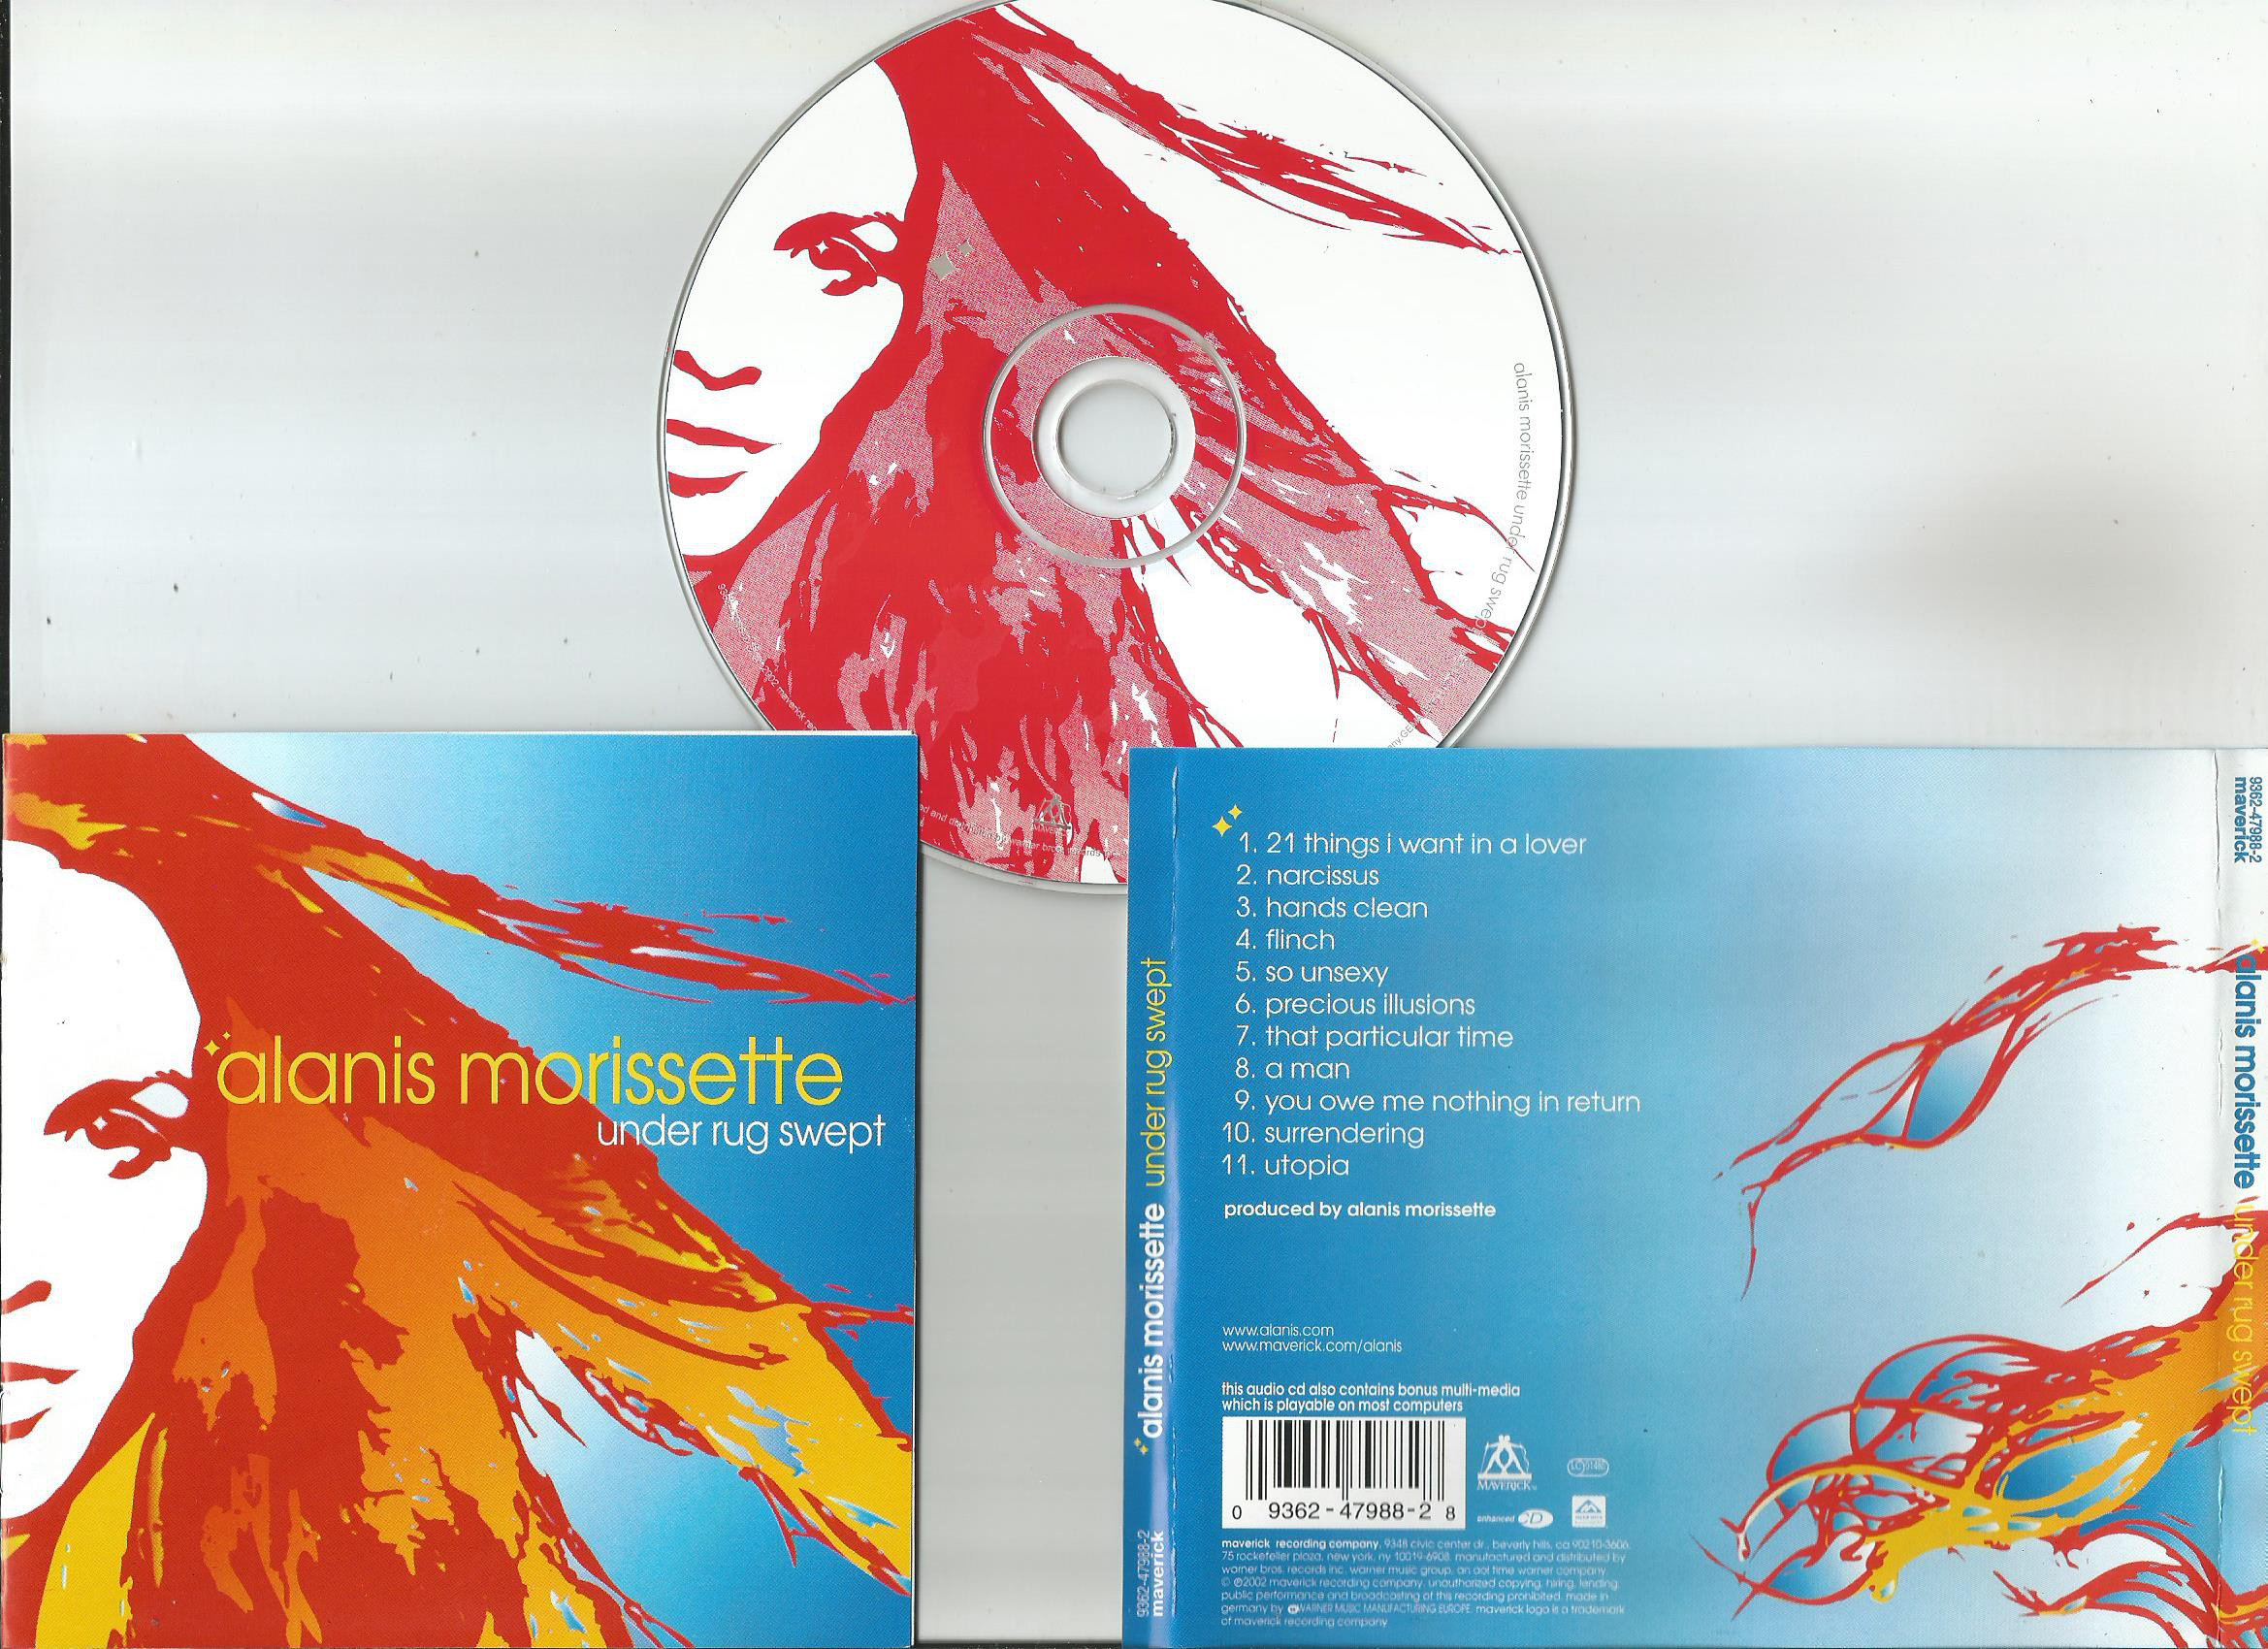 Alanis morissette unsexy chords to amazing